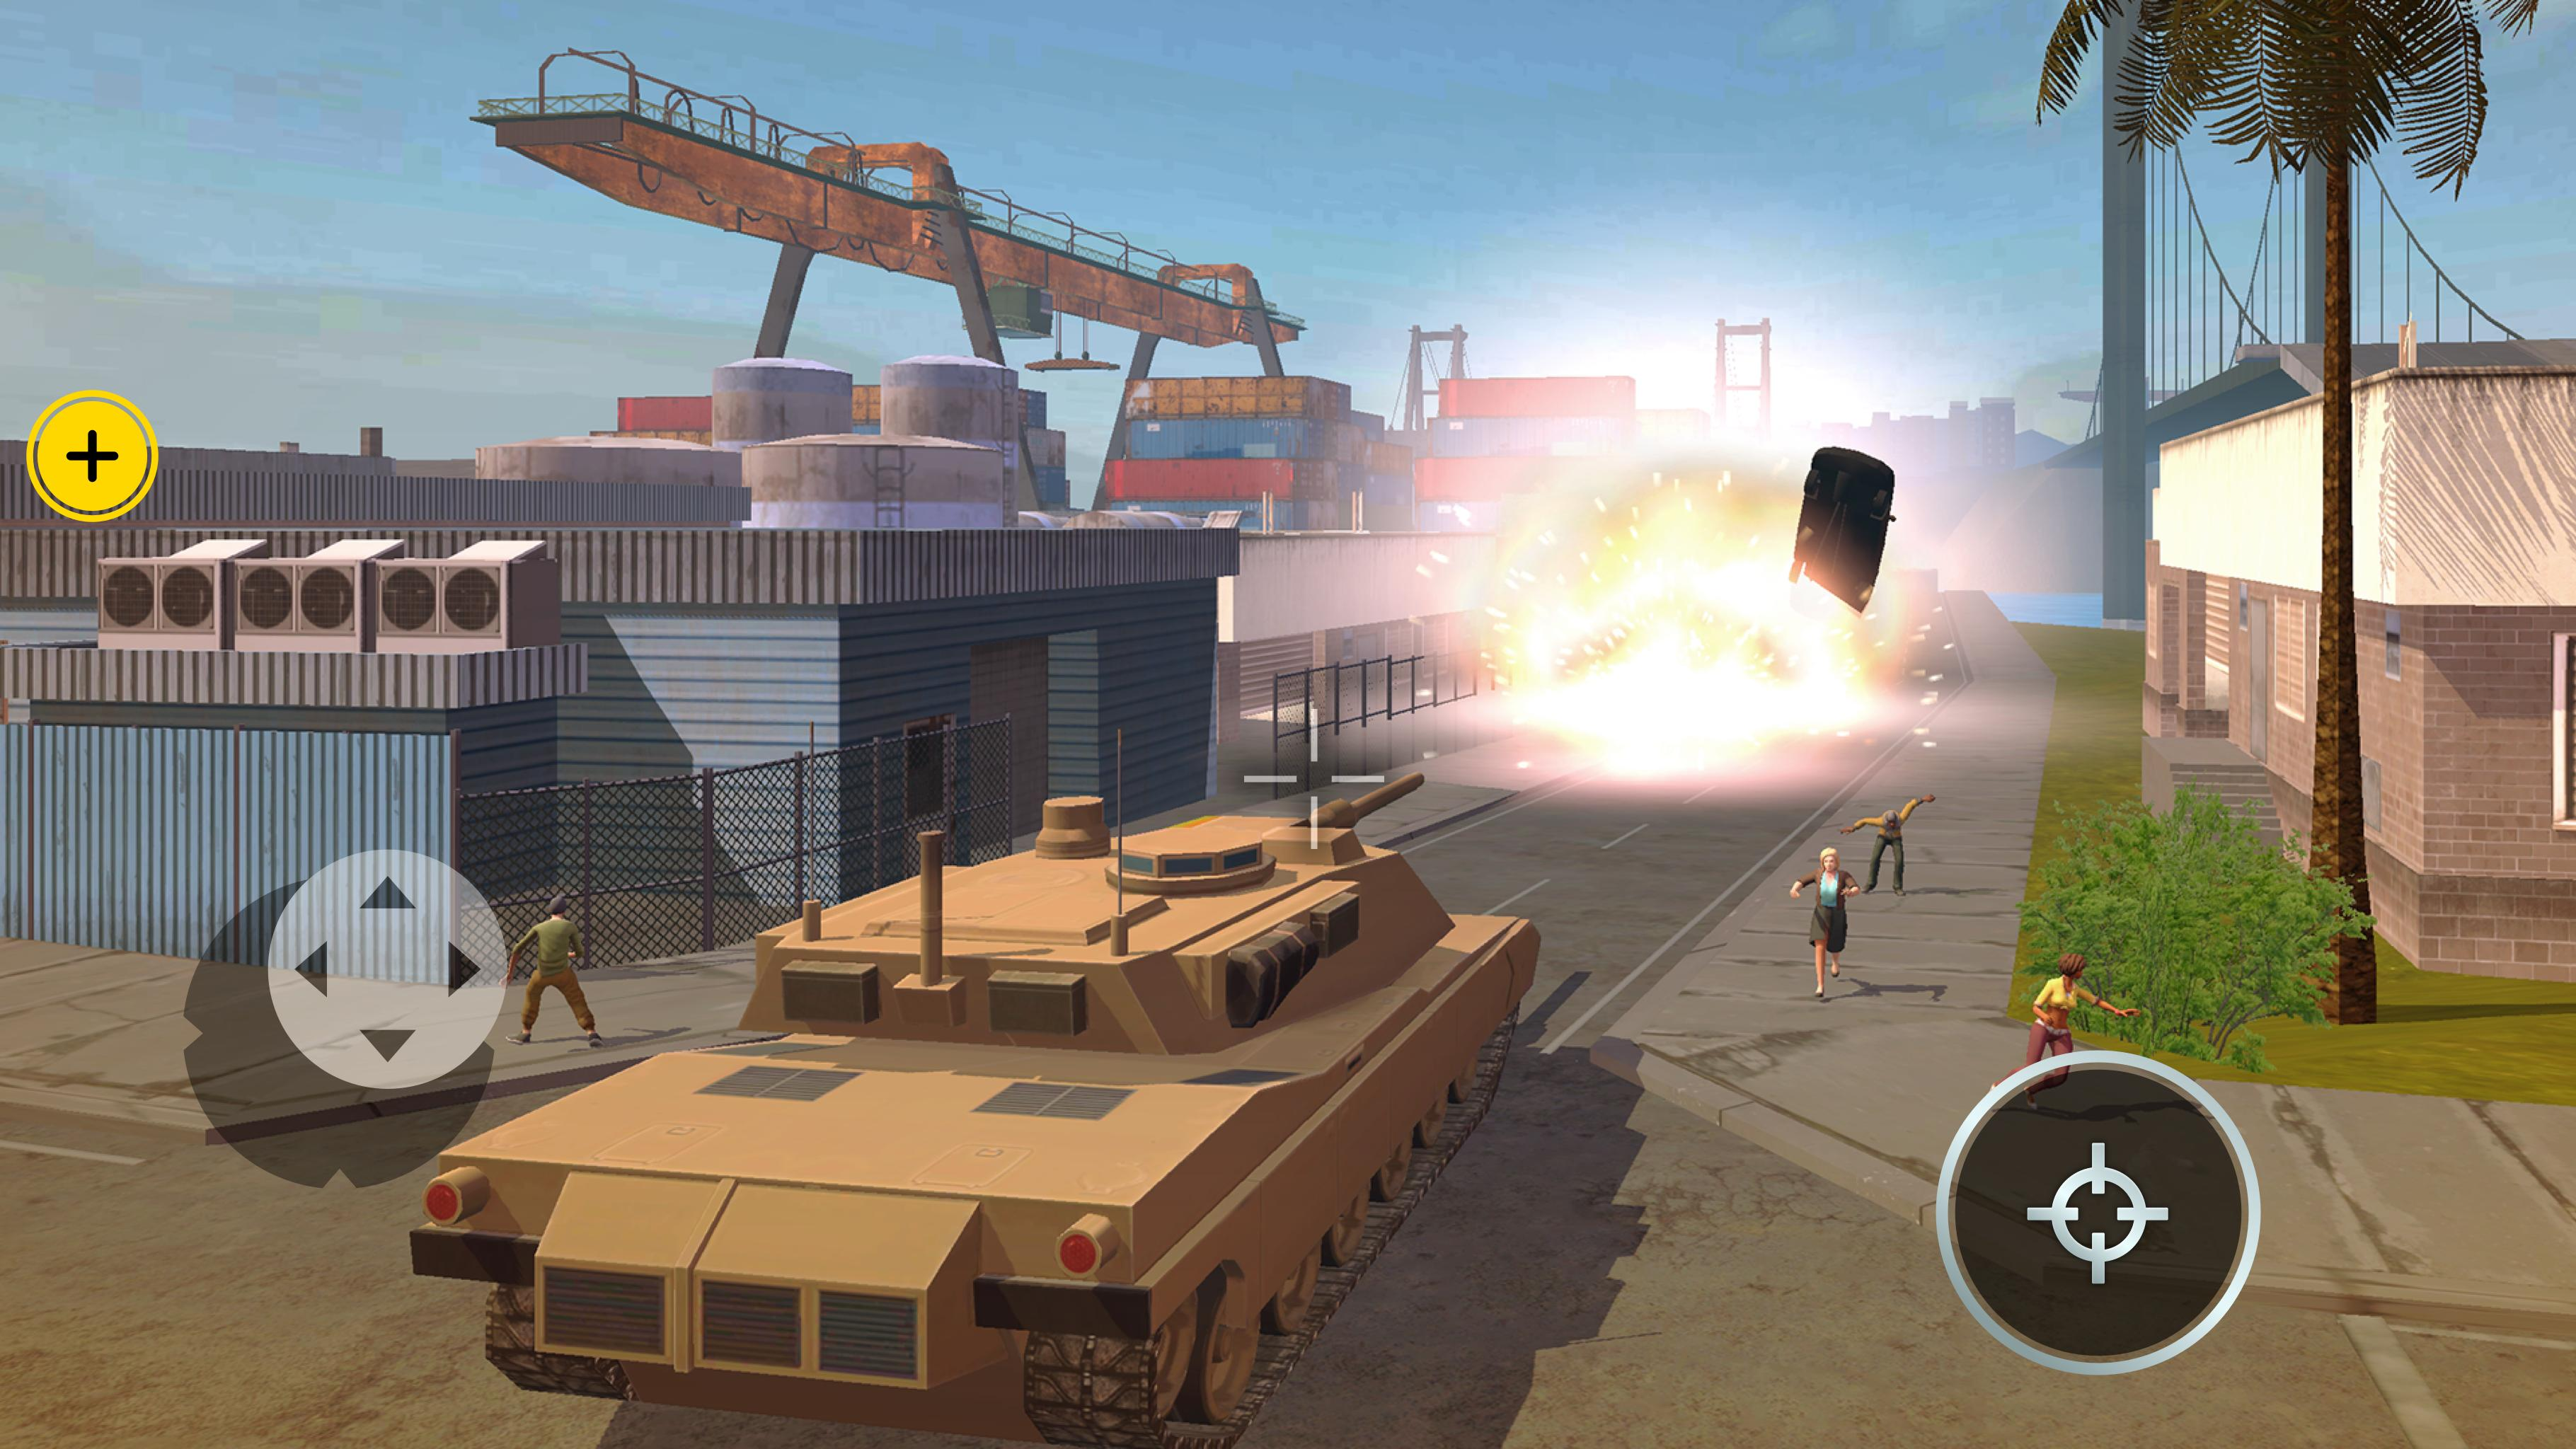 The Grand Wars: San Andreas for Android - APK Download